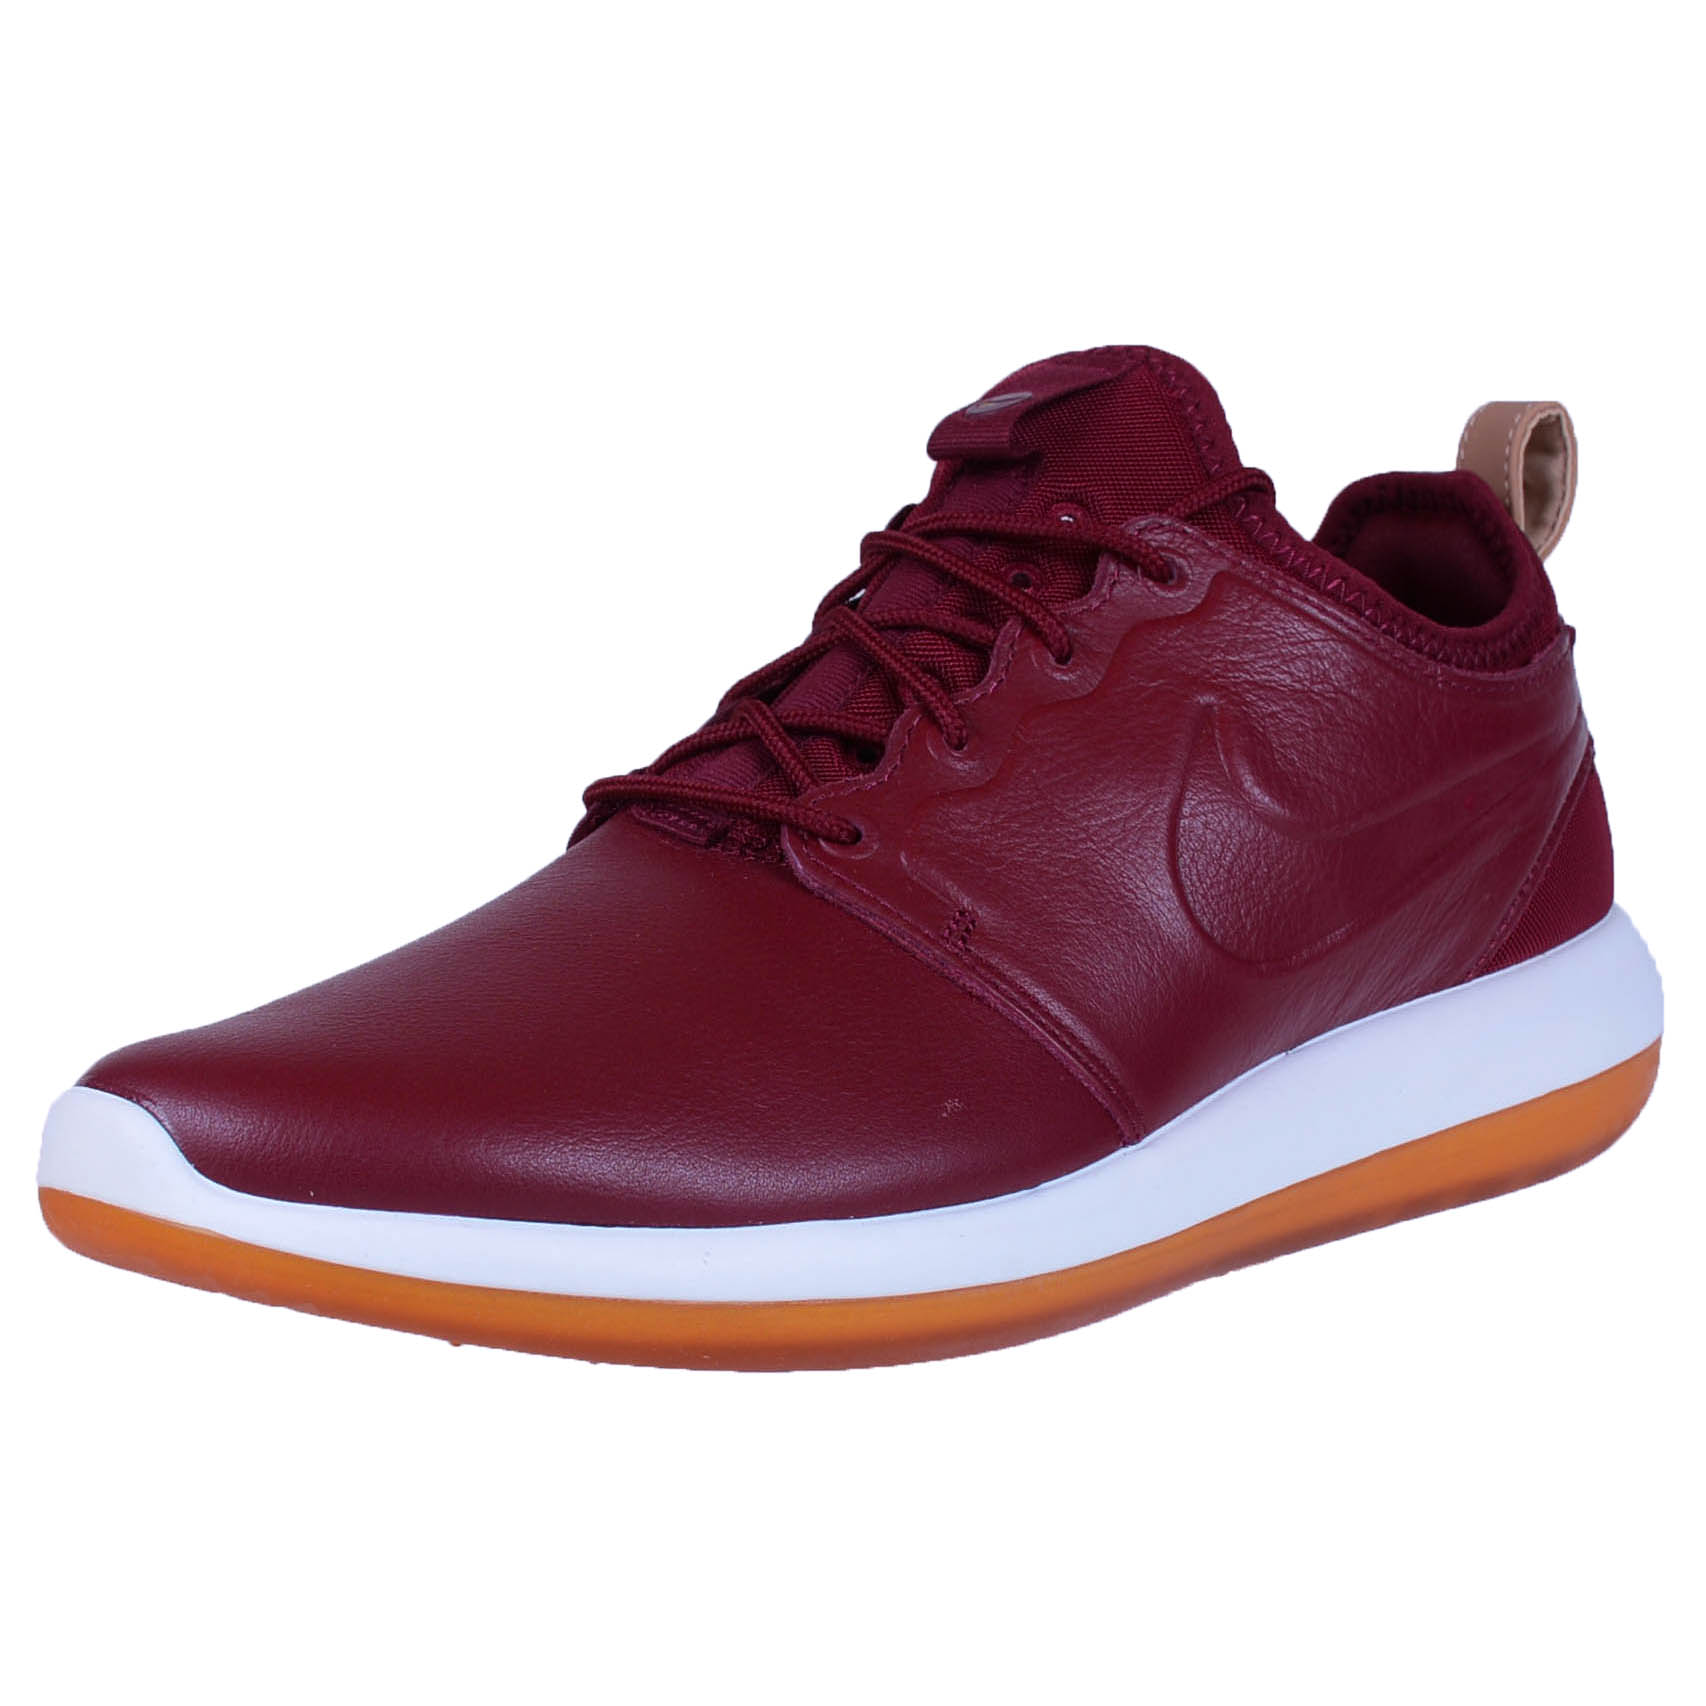 87337bab887e 2016 Limited Hombre Nike Air Force 1  Q7 Low Leather Todos De Red ...